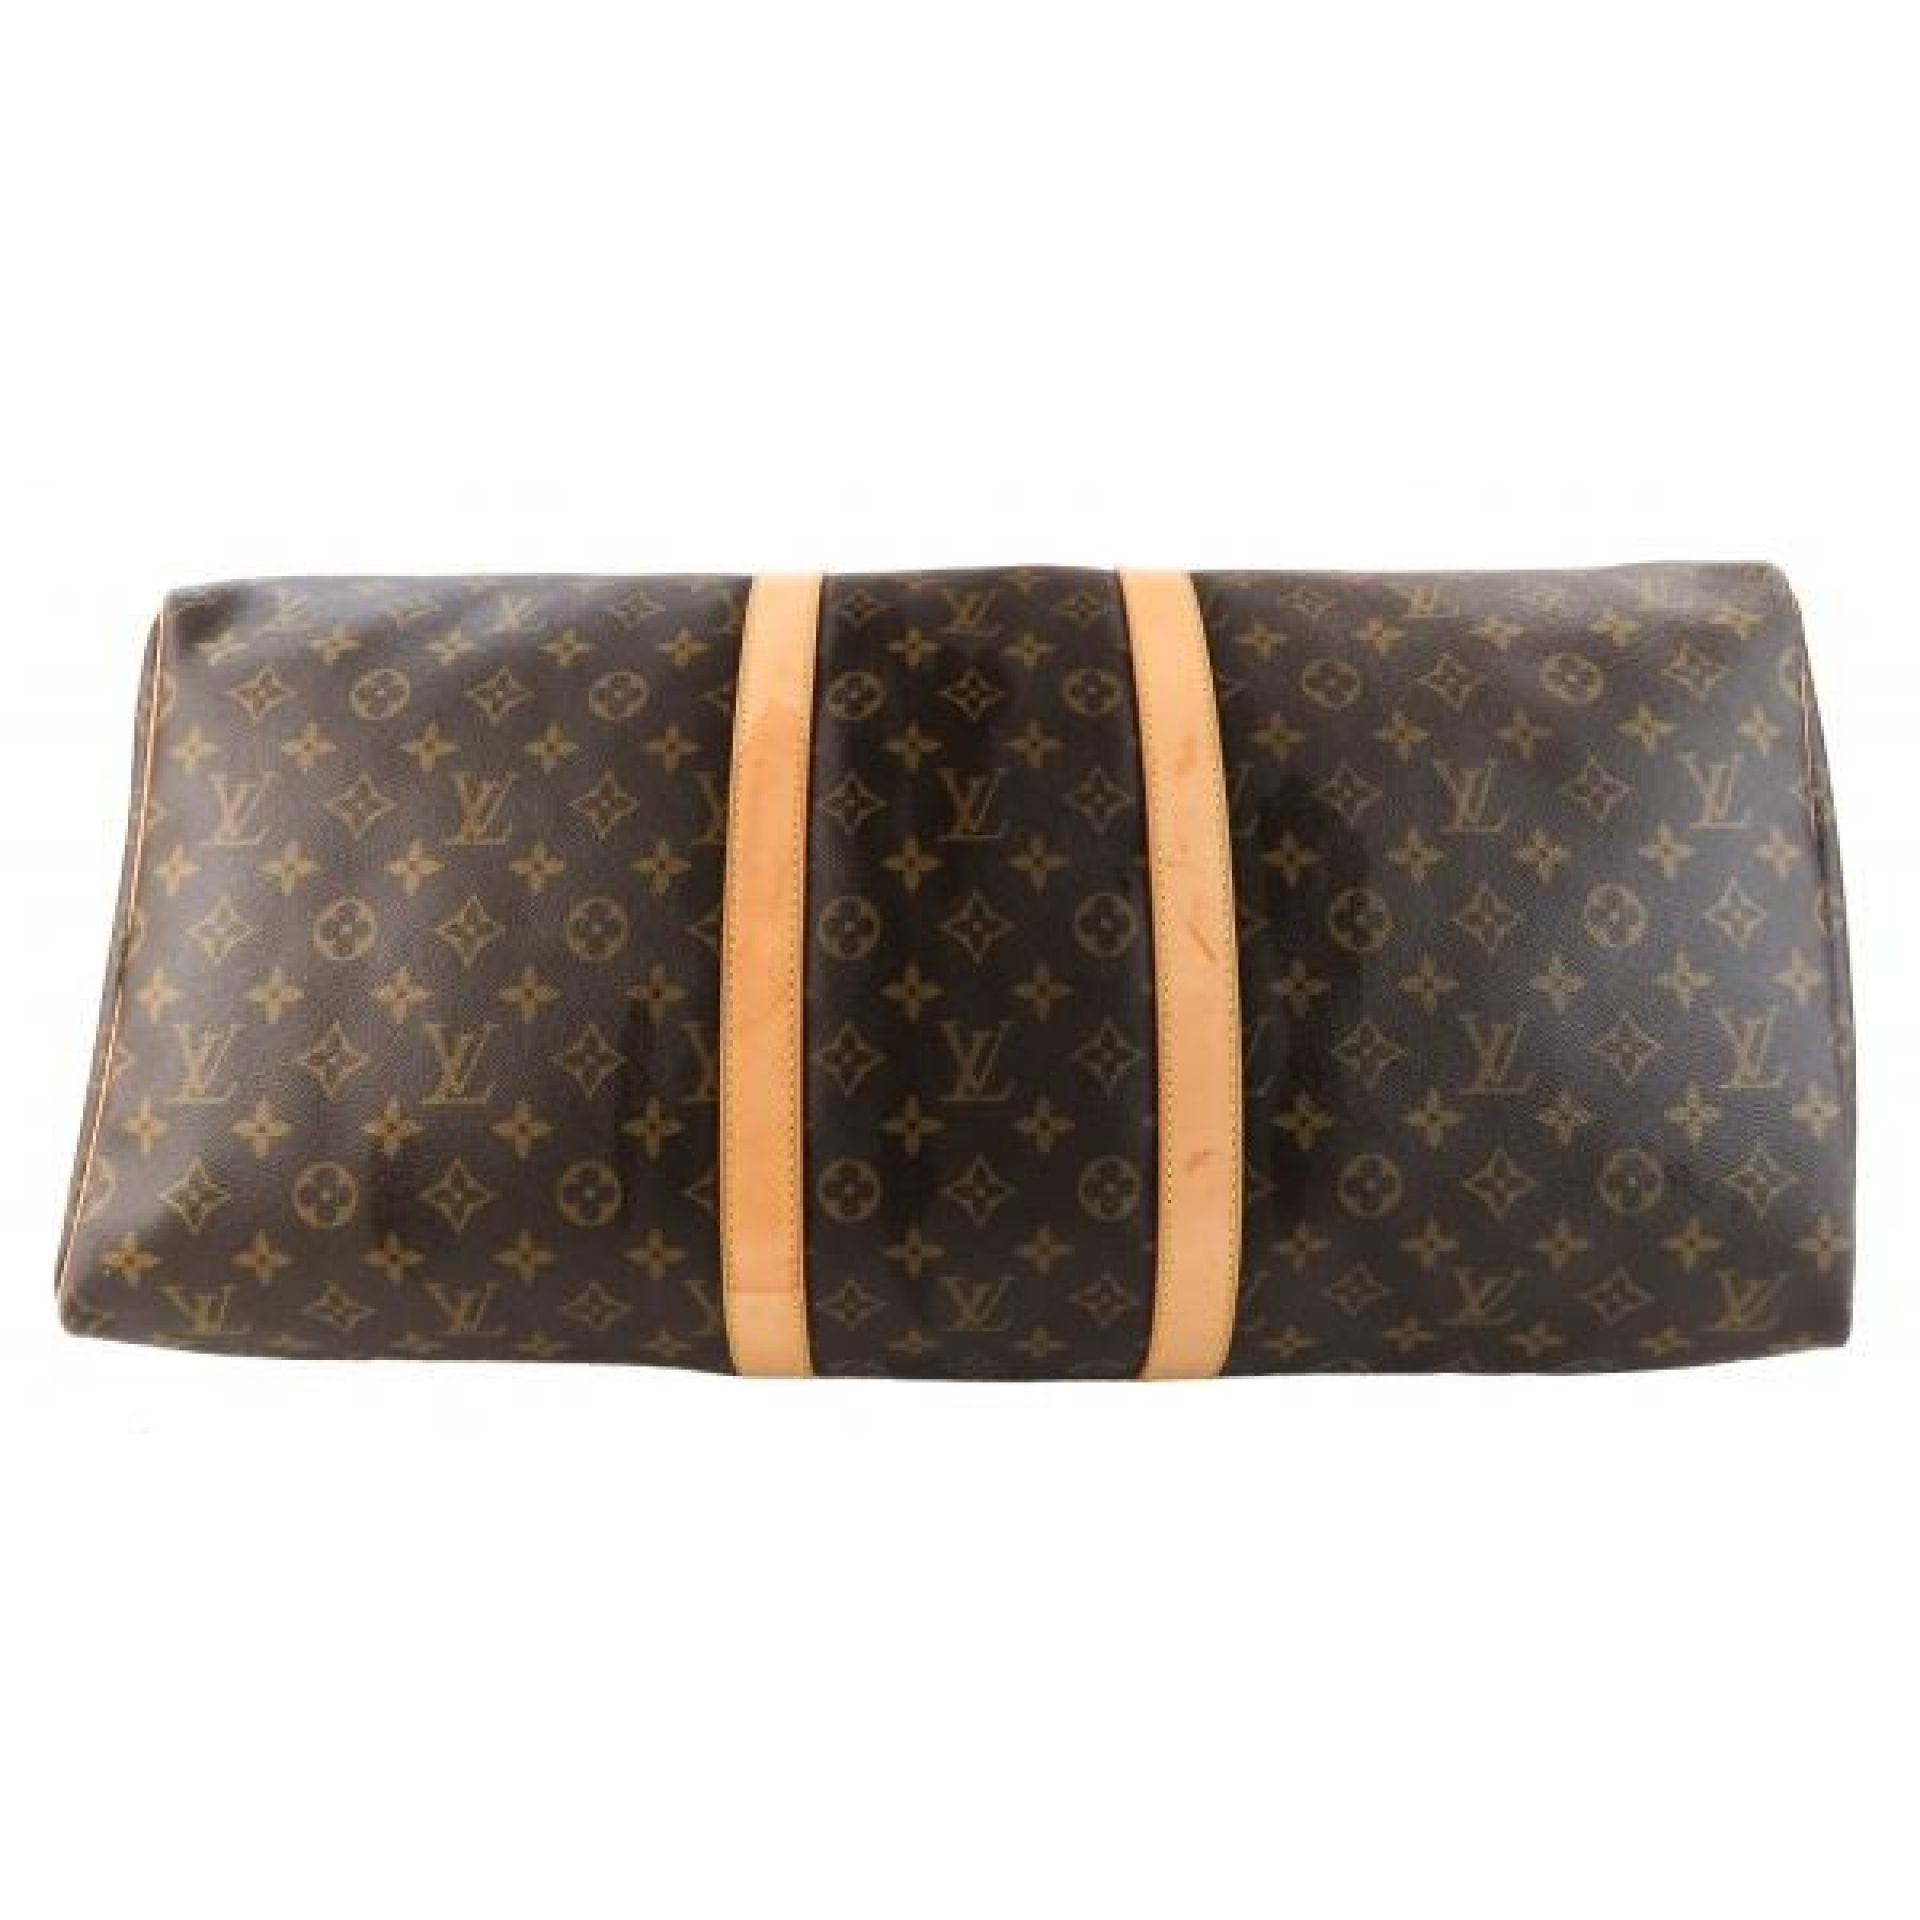 Louis Vuitton Brown Monogram Canvas Keepall 55 Luggage Duffle Bag